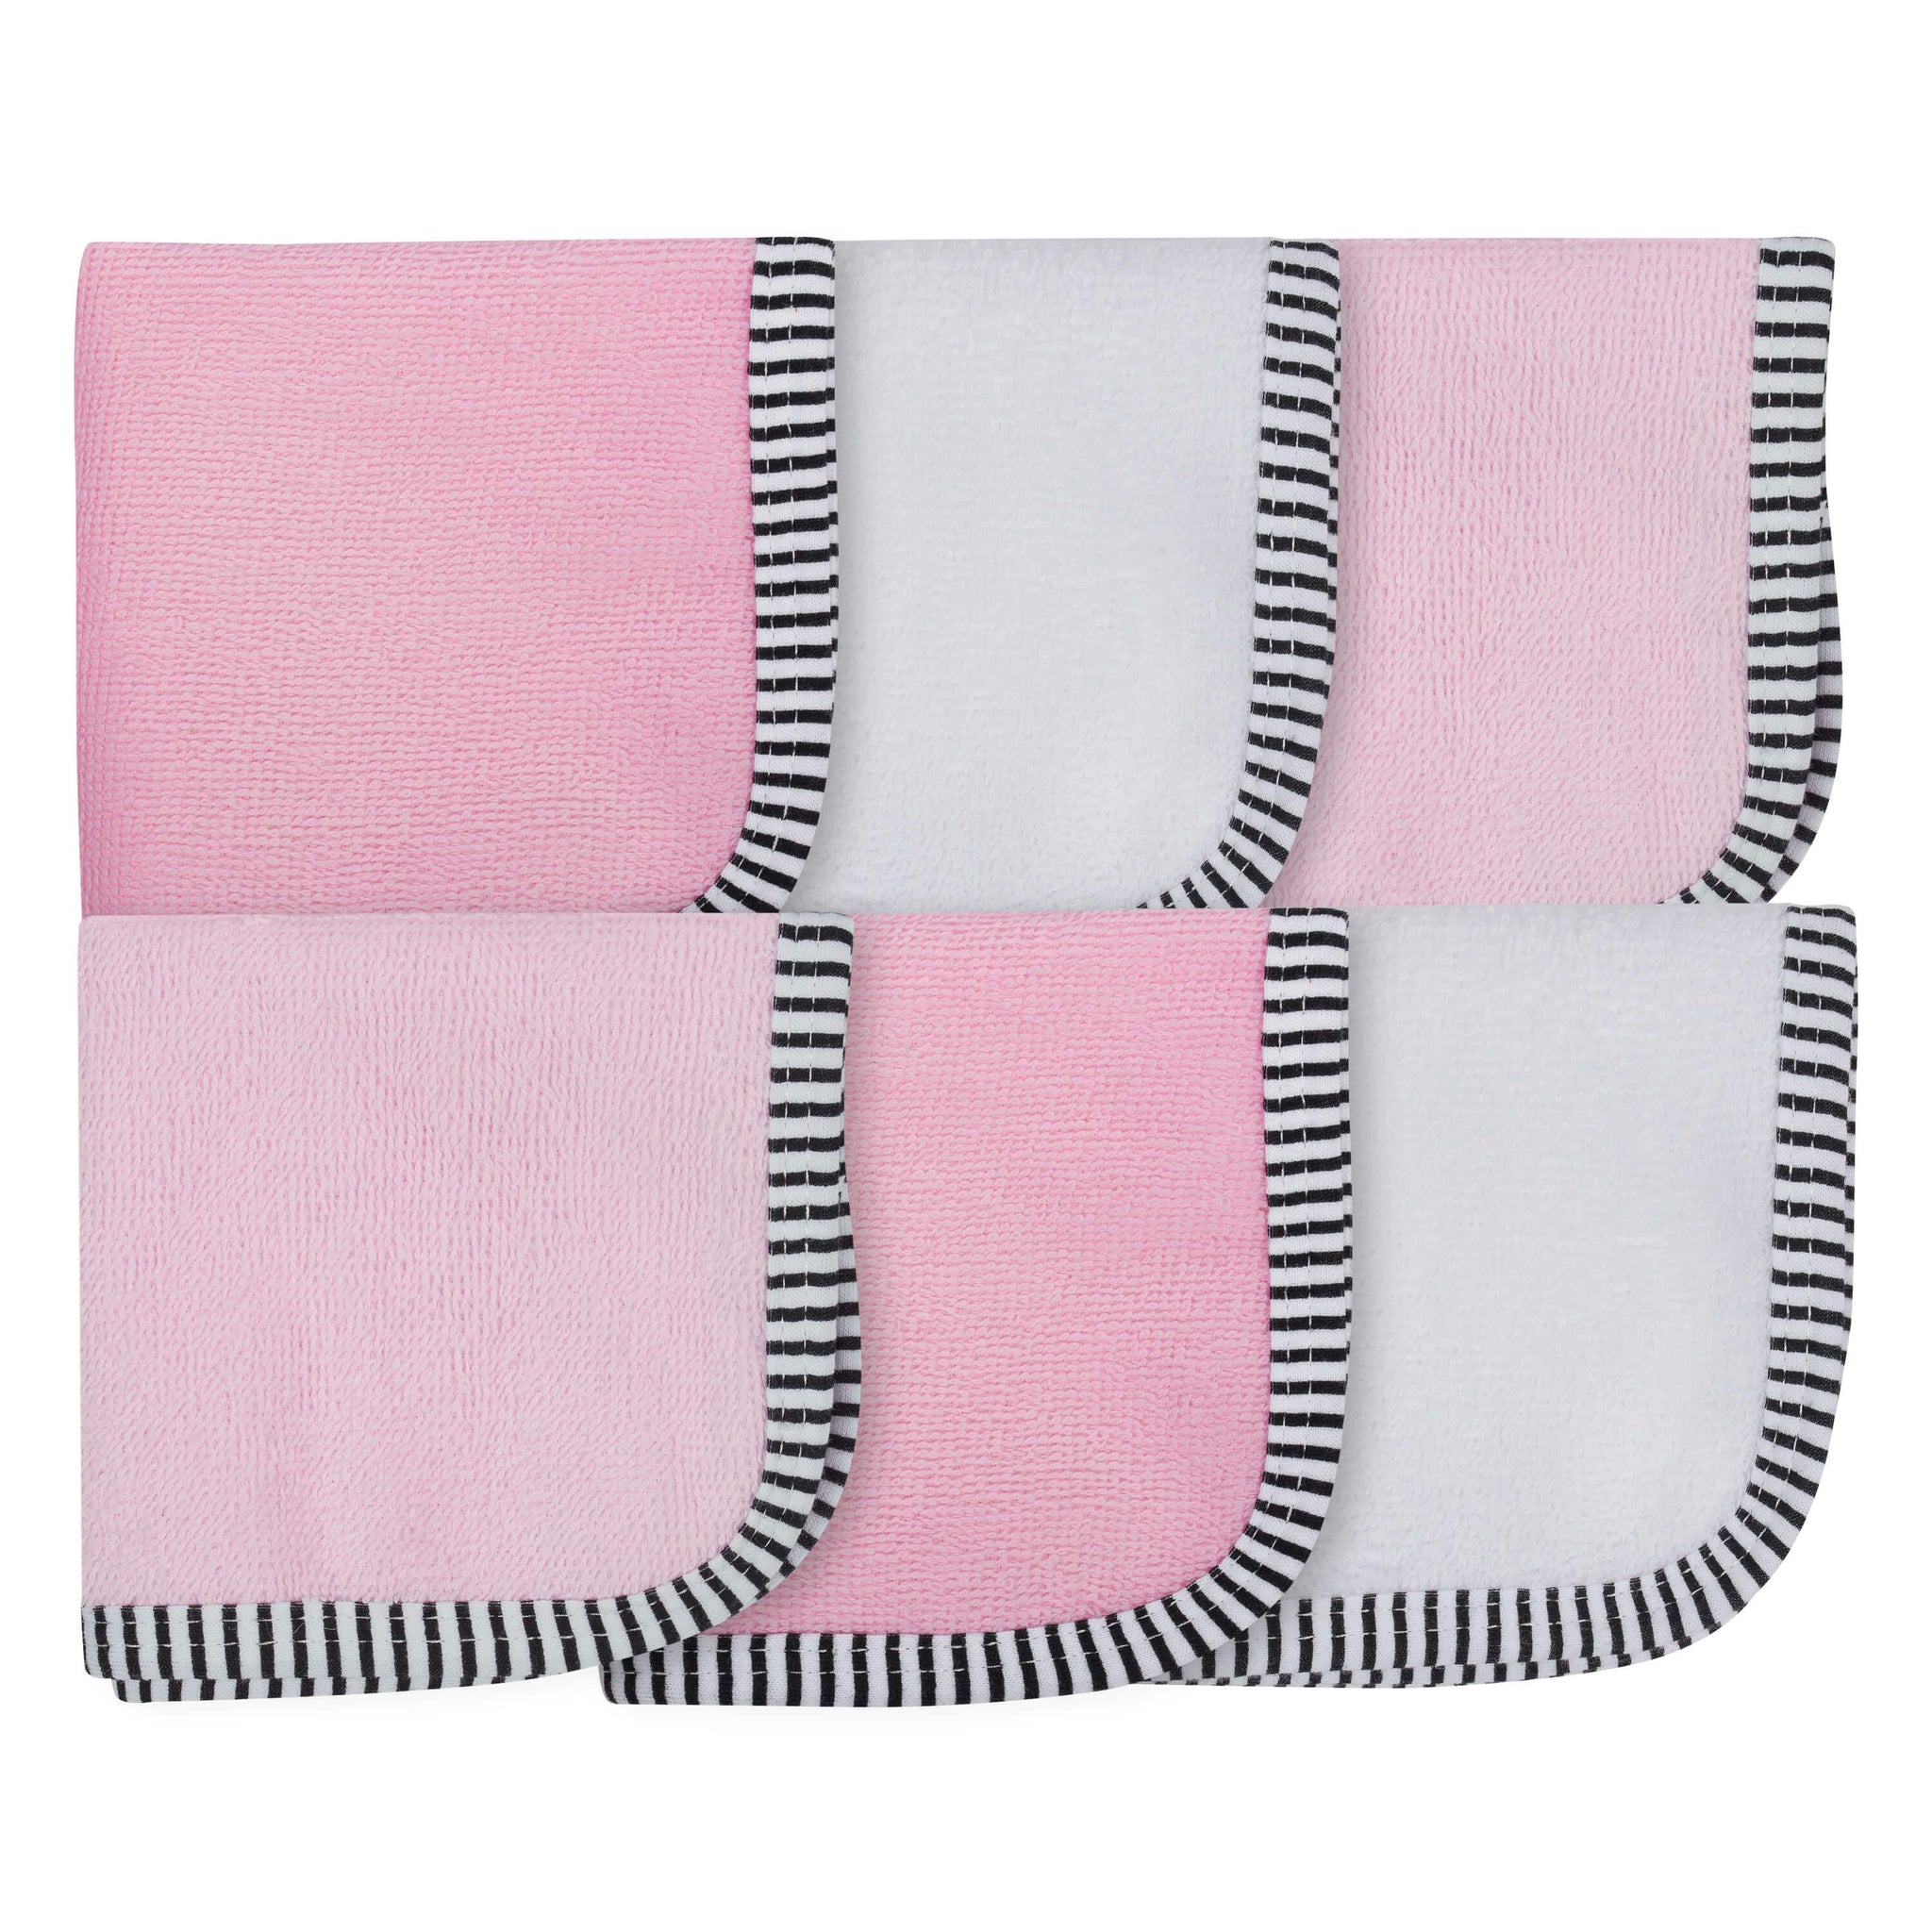 6-Pack Girls Pink Woven Washcloths